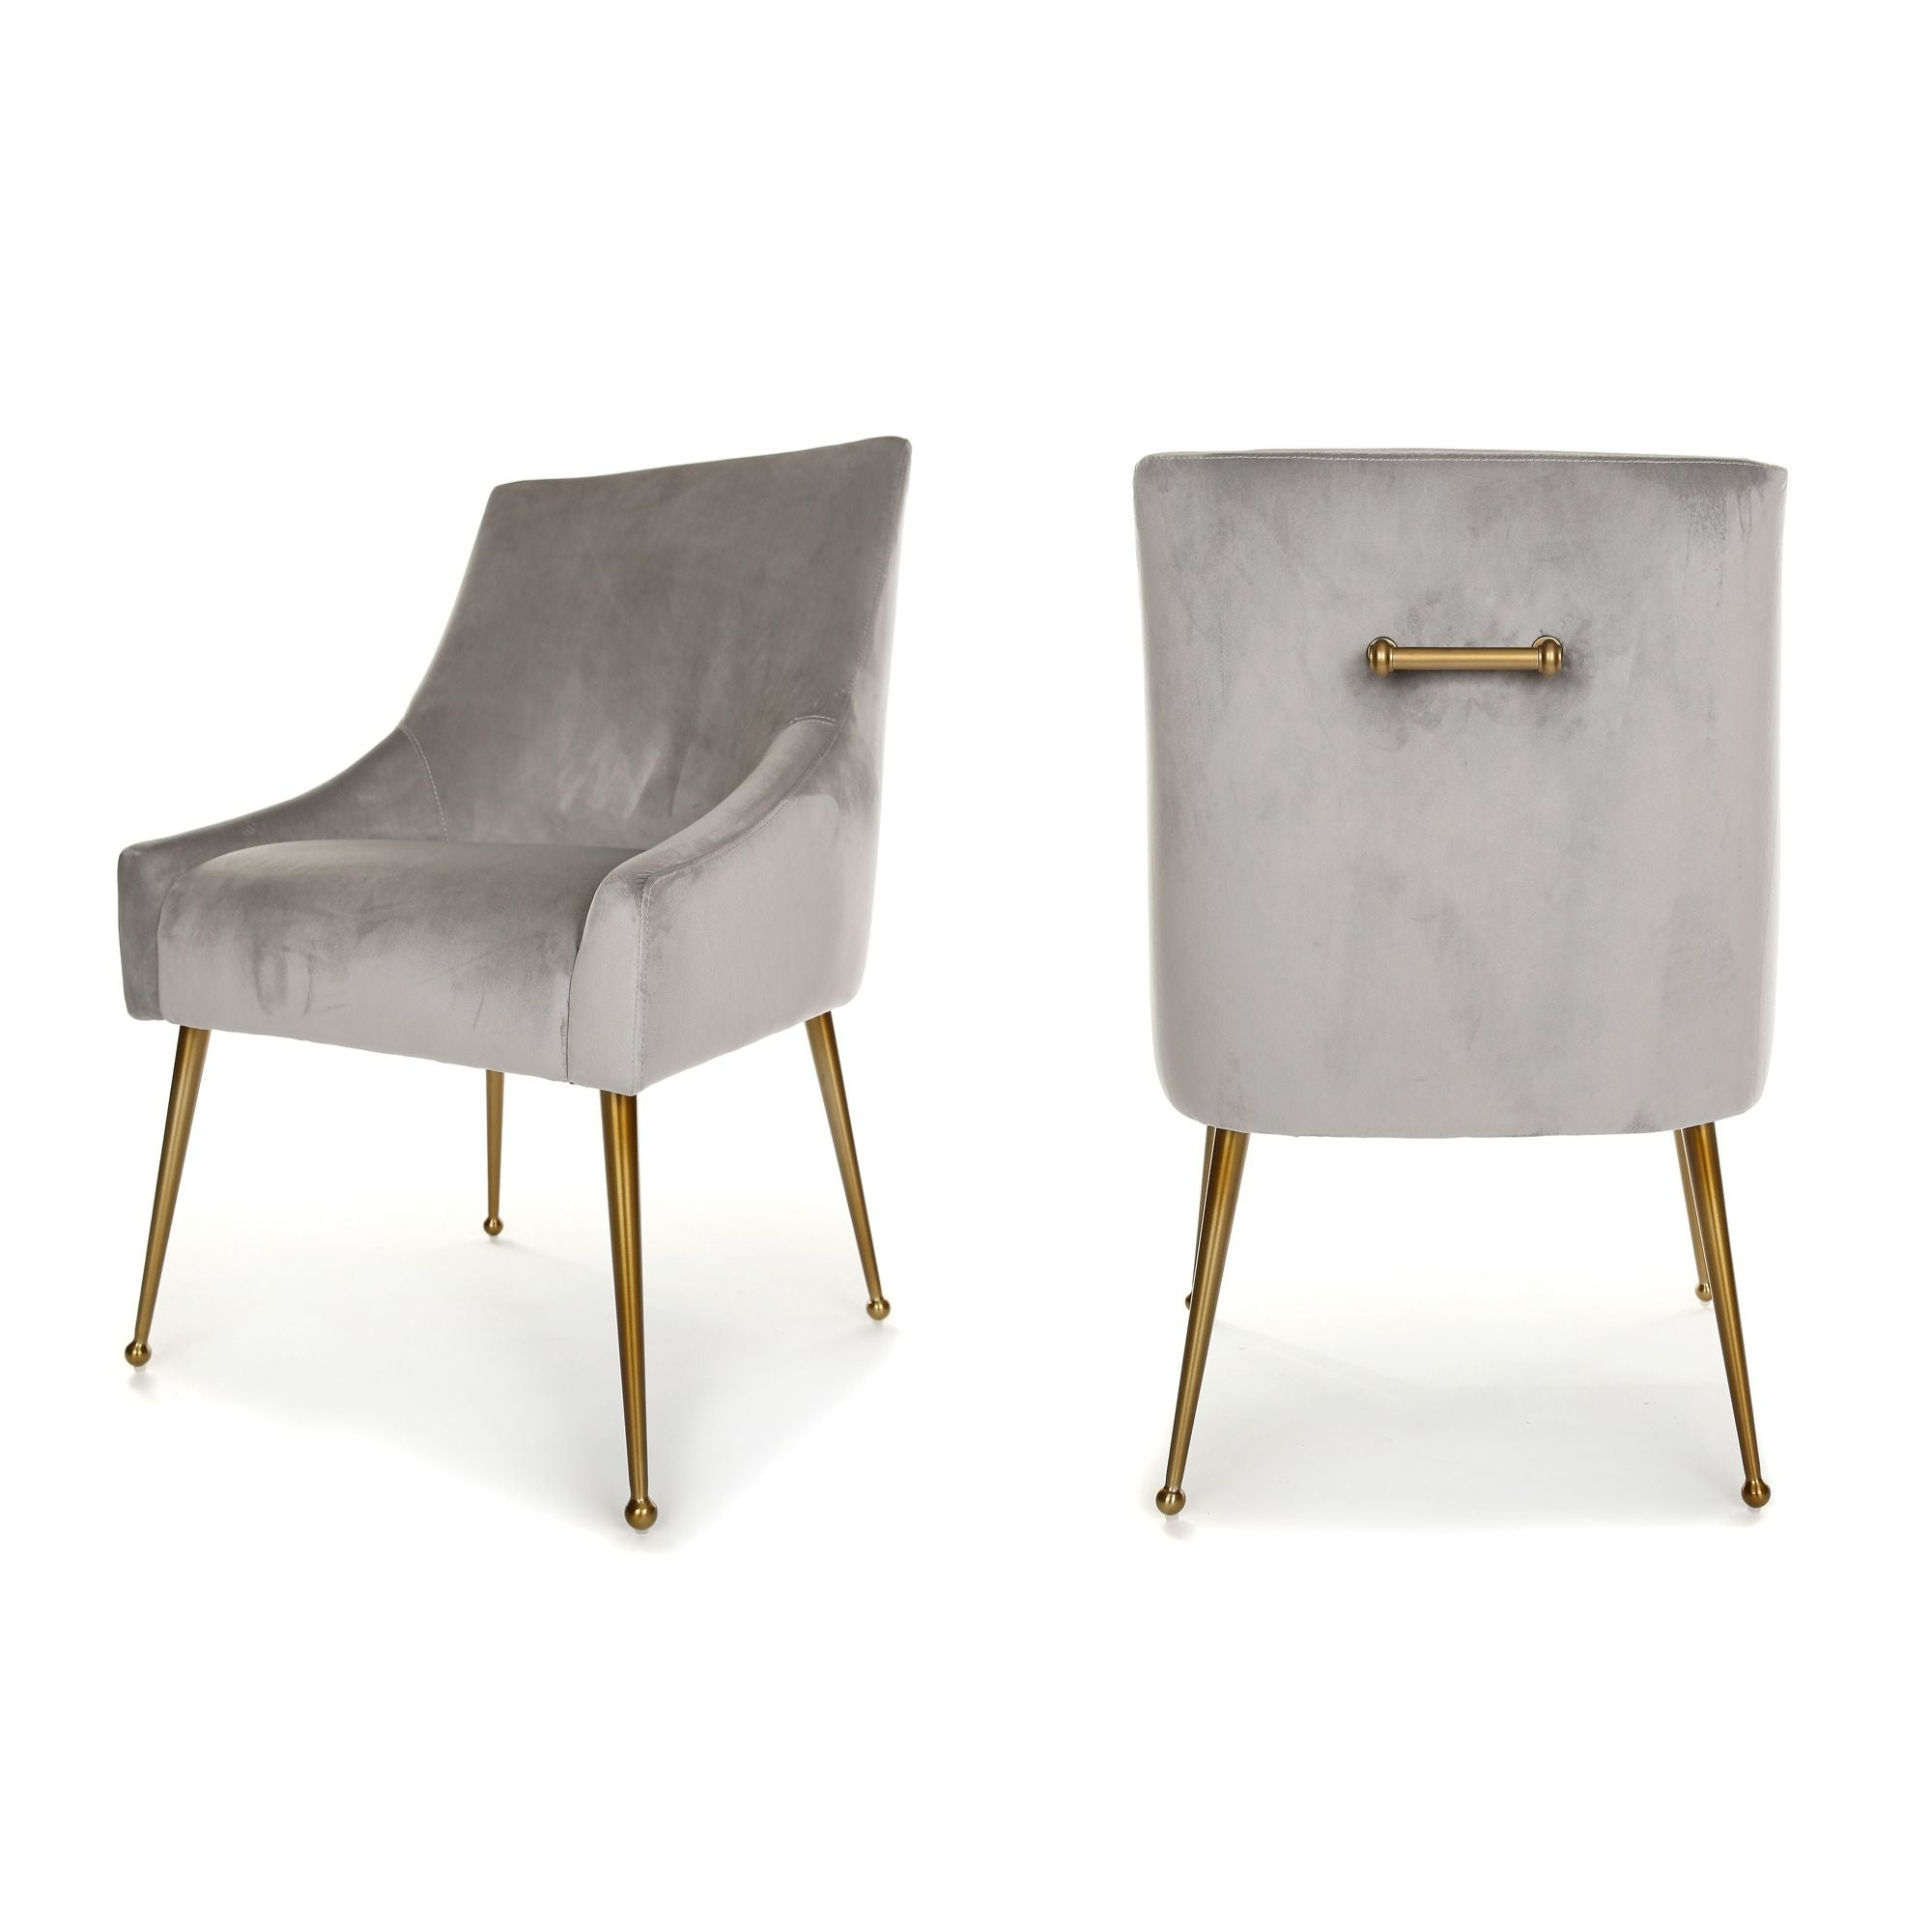 Finn Dining Chair, main image. Upholstered in Light Grey Velvet, with Brushed Gold Legs and handle